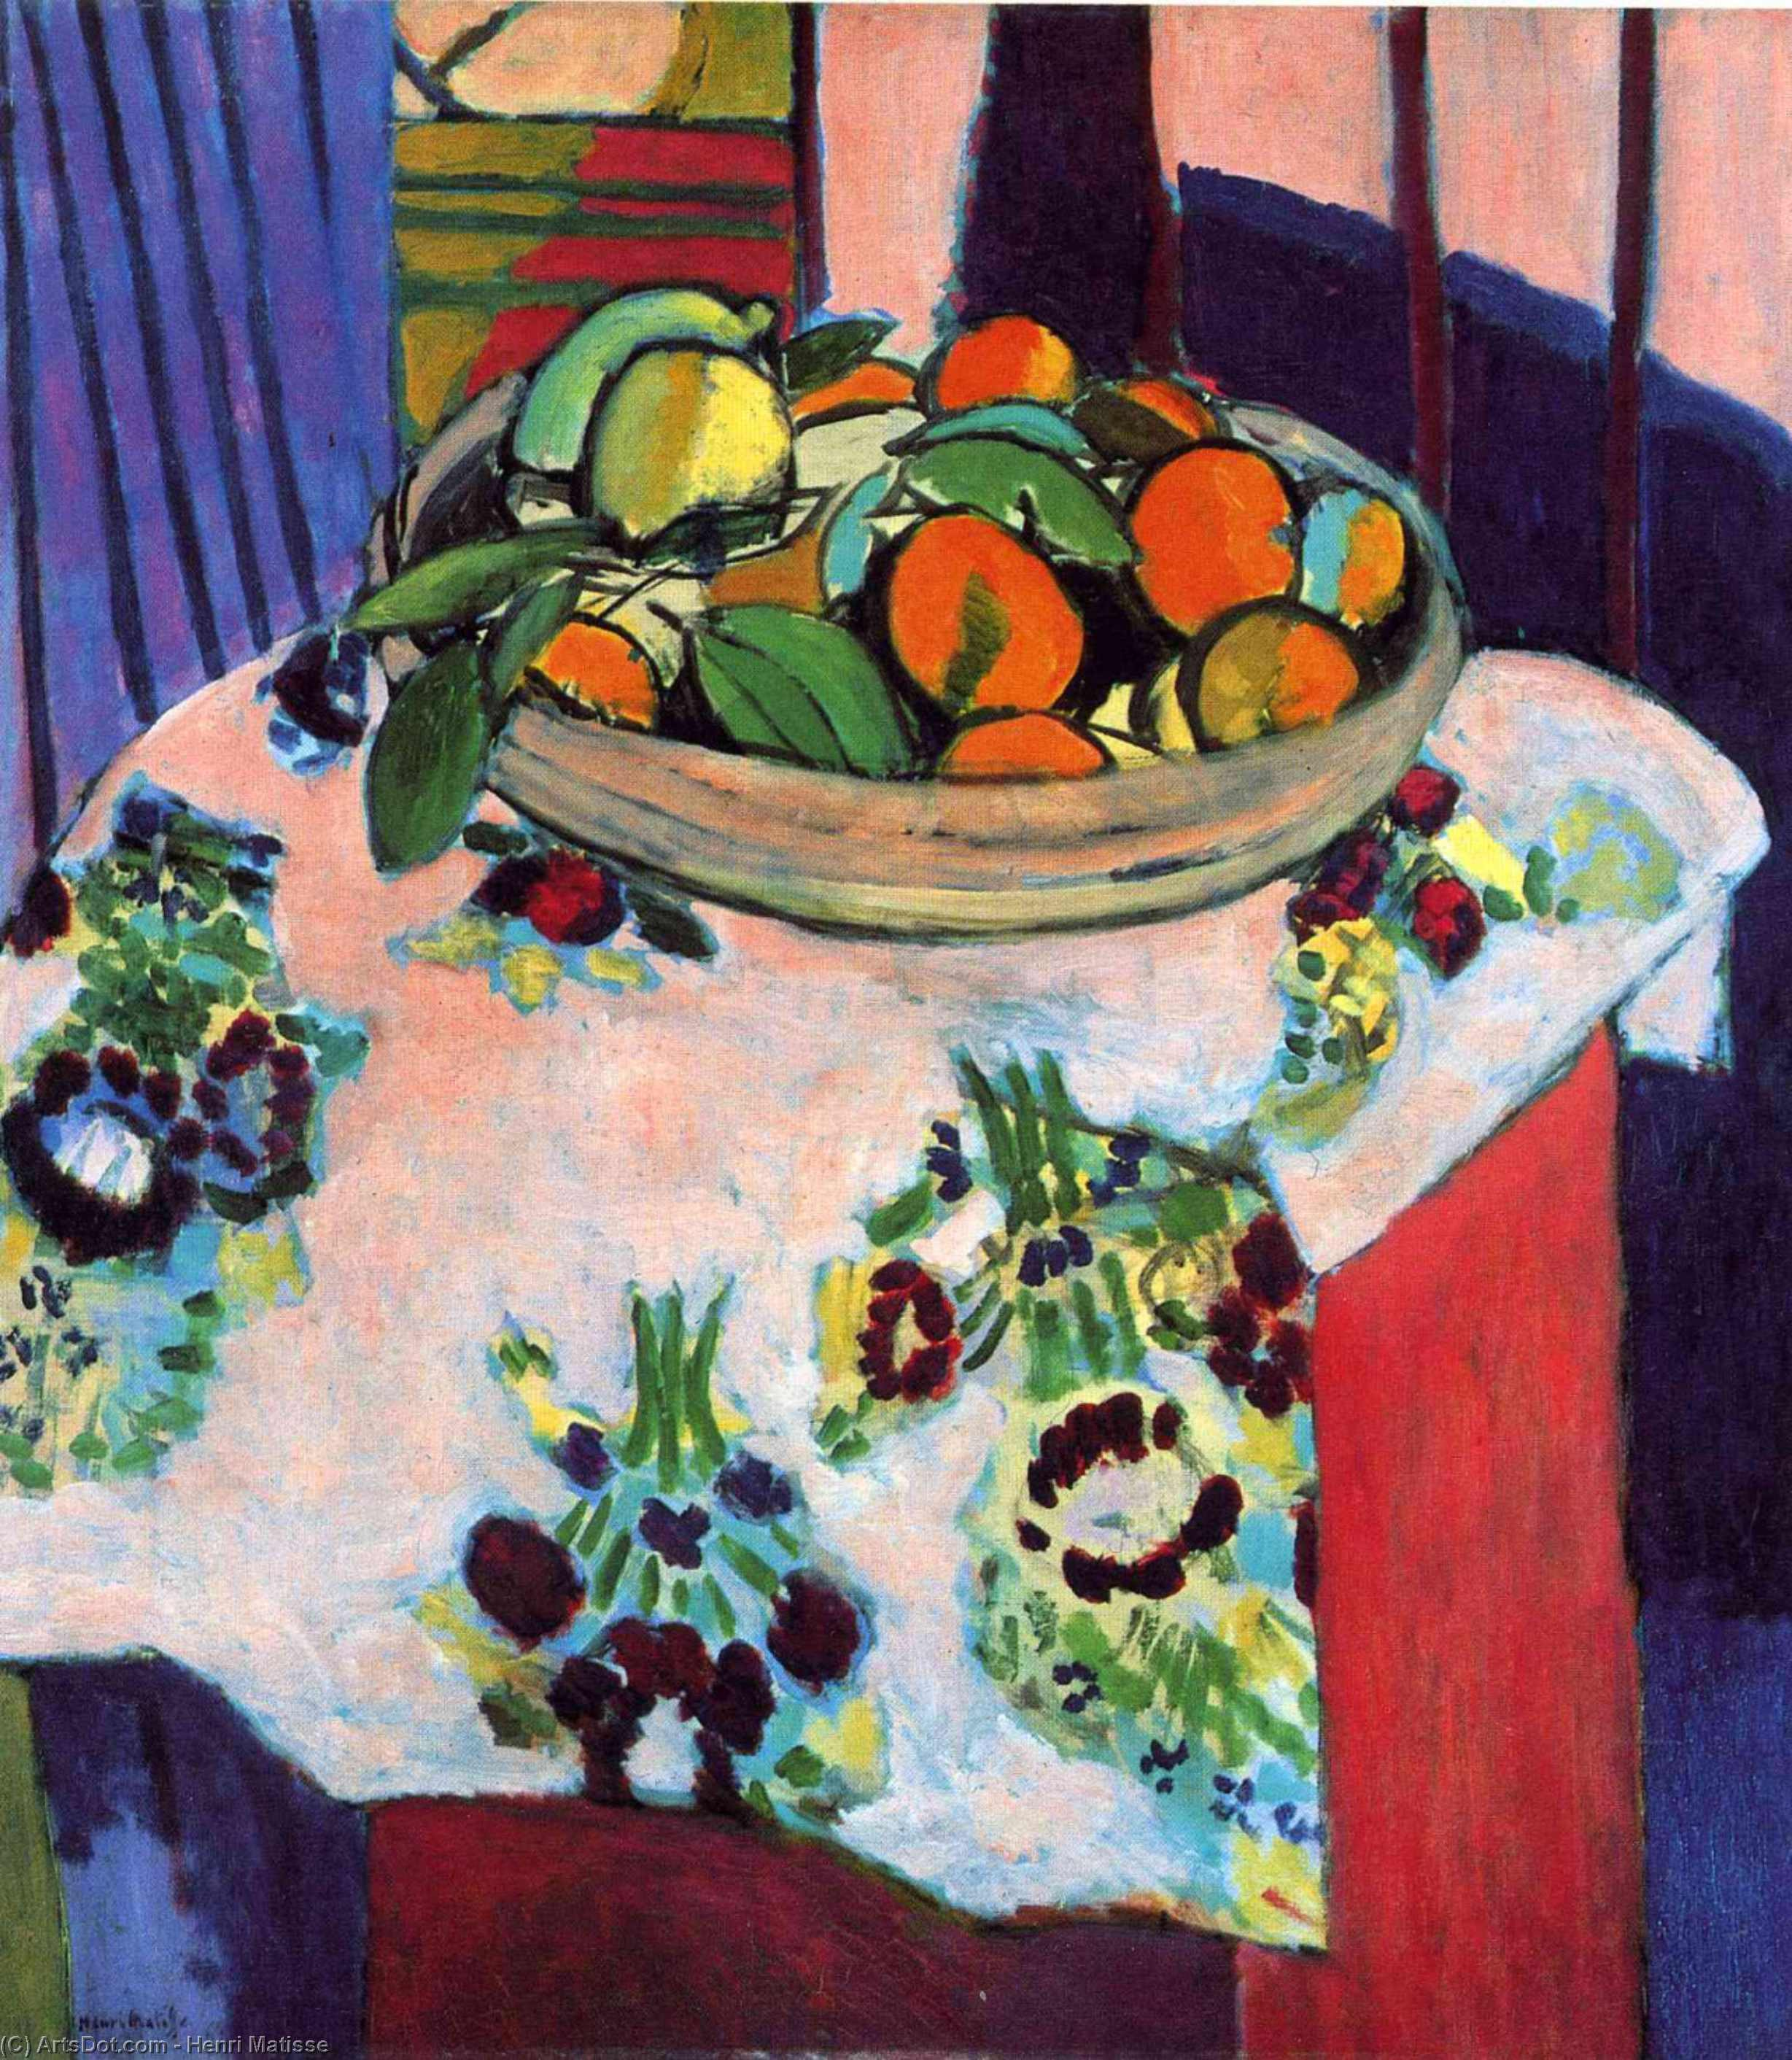 Wikioo.org - The Encyclopedia of Fine Arts - Painting, Artwork by Henri Matisse - Basket with Oranges